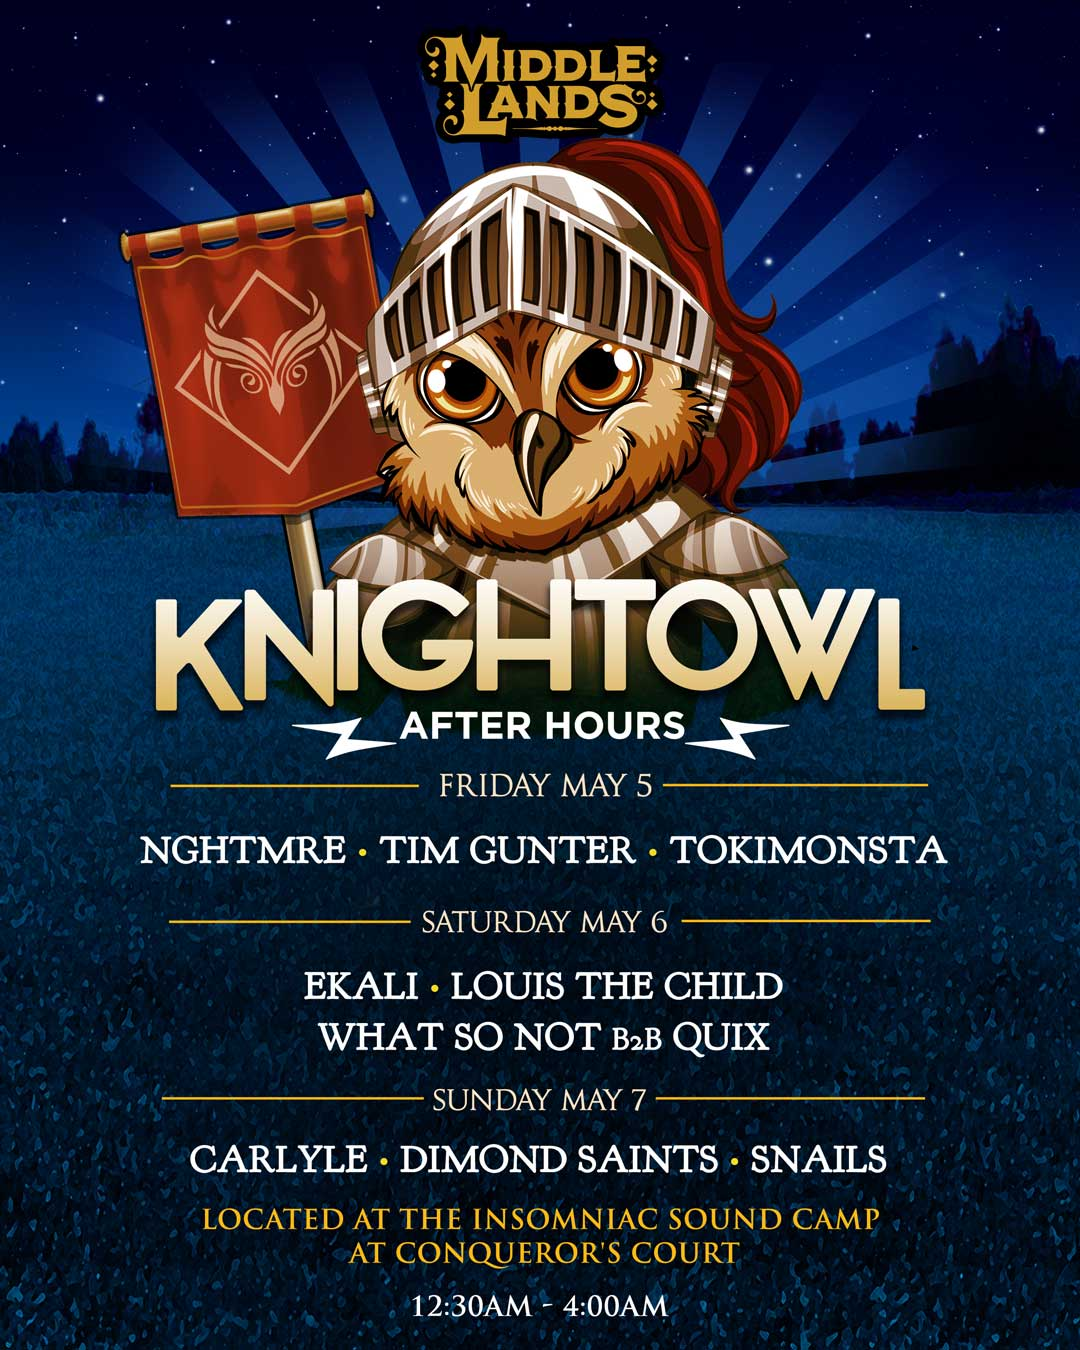 middlelands_2017_knight_owl_after_hours_asset_1080x1350_v03_WEB-JO